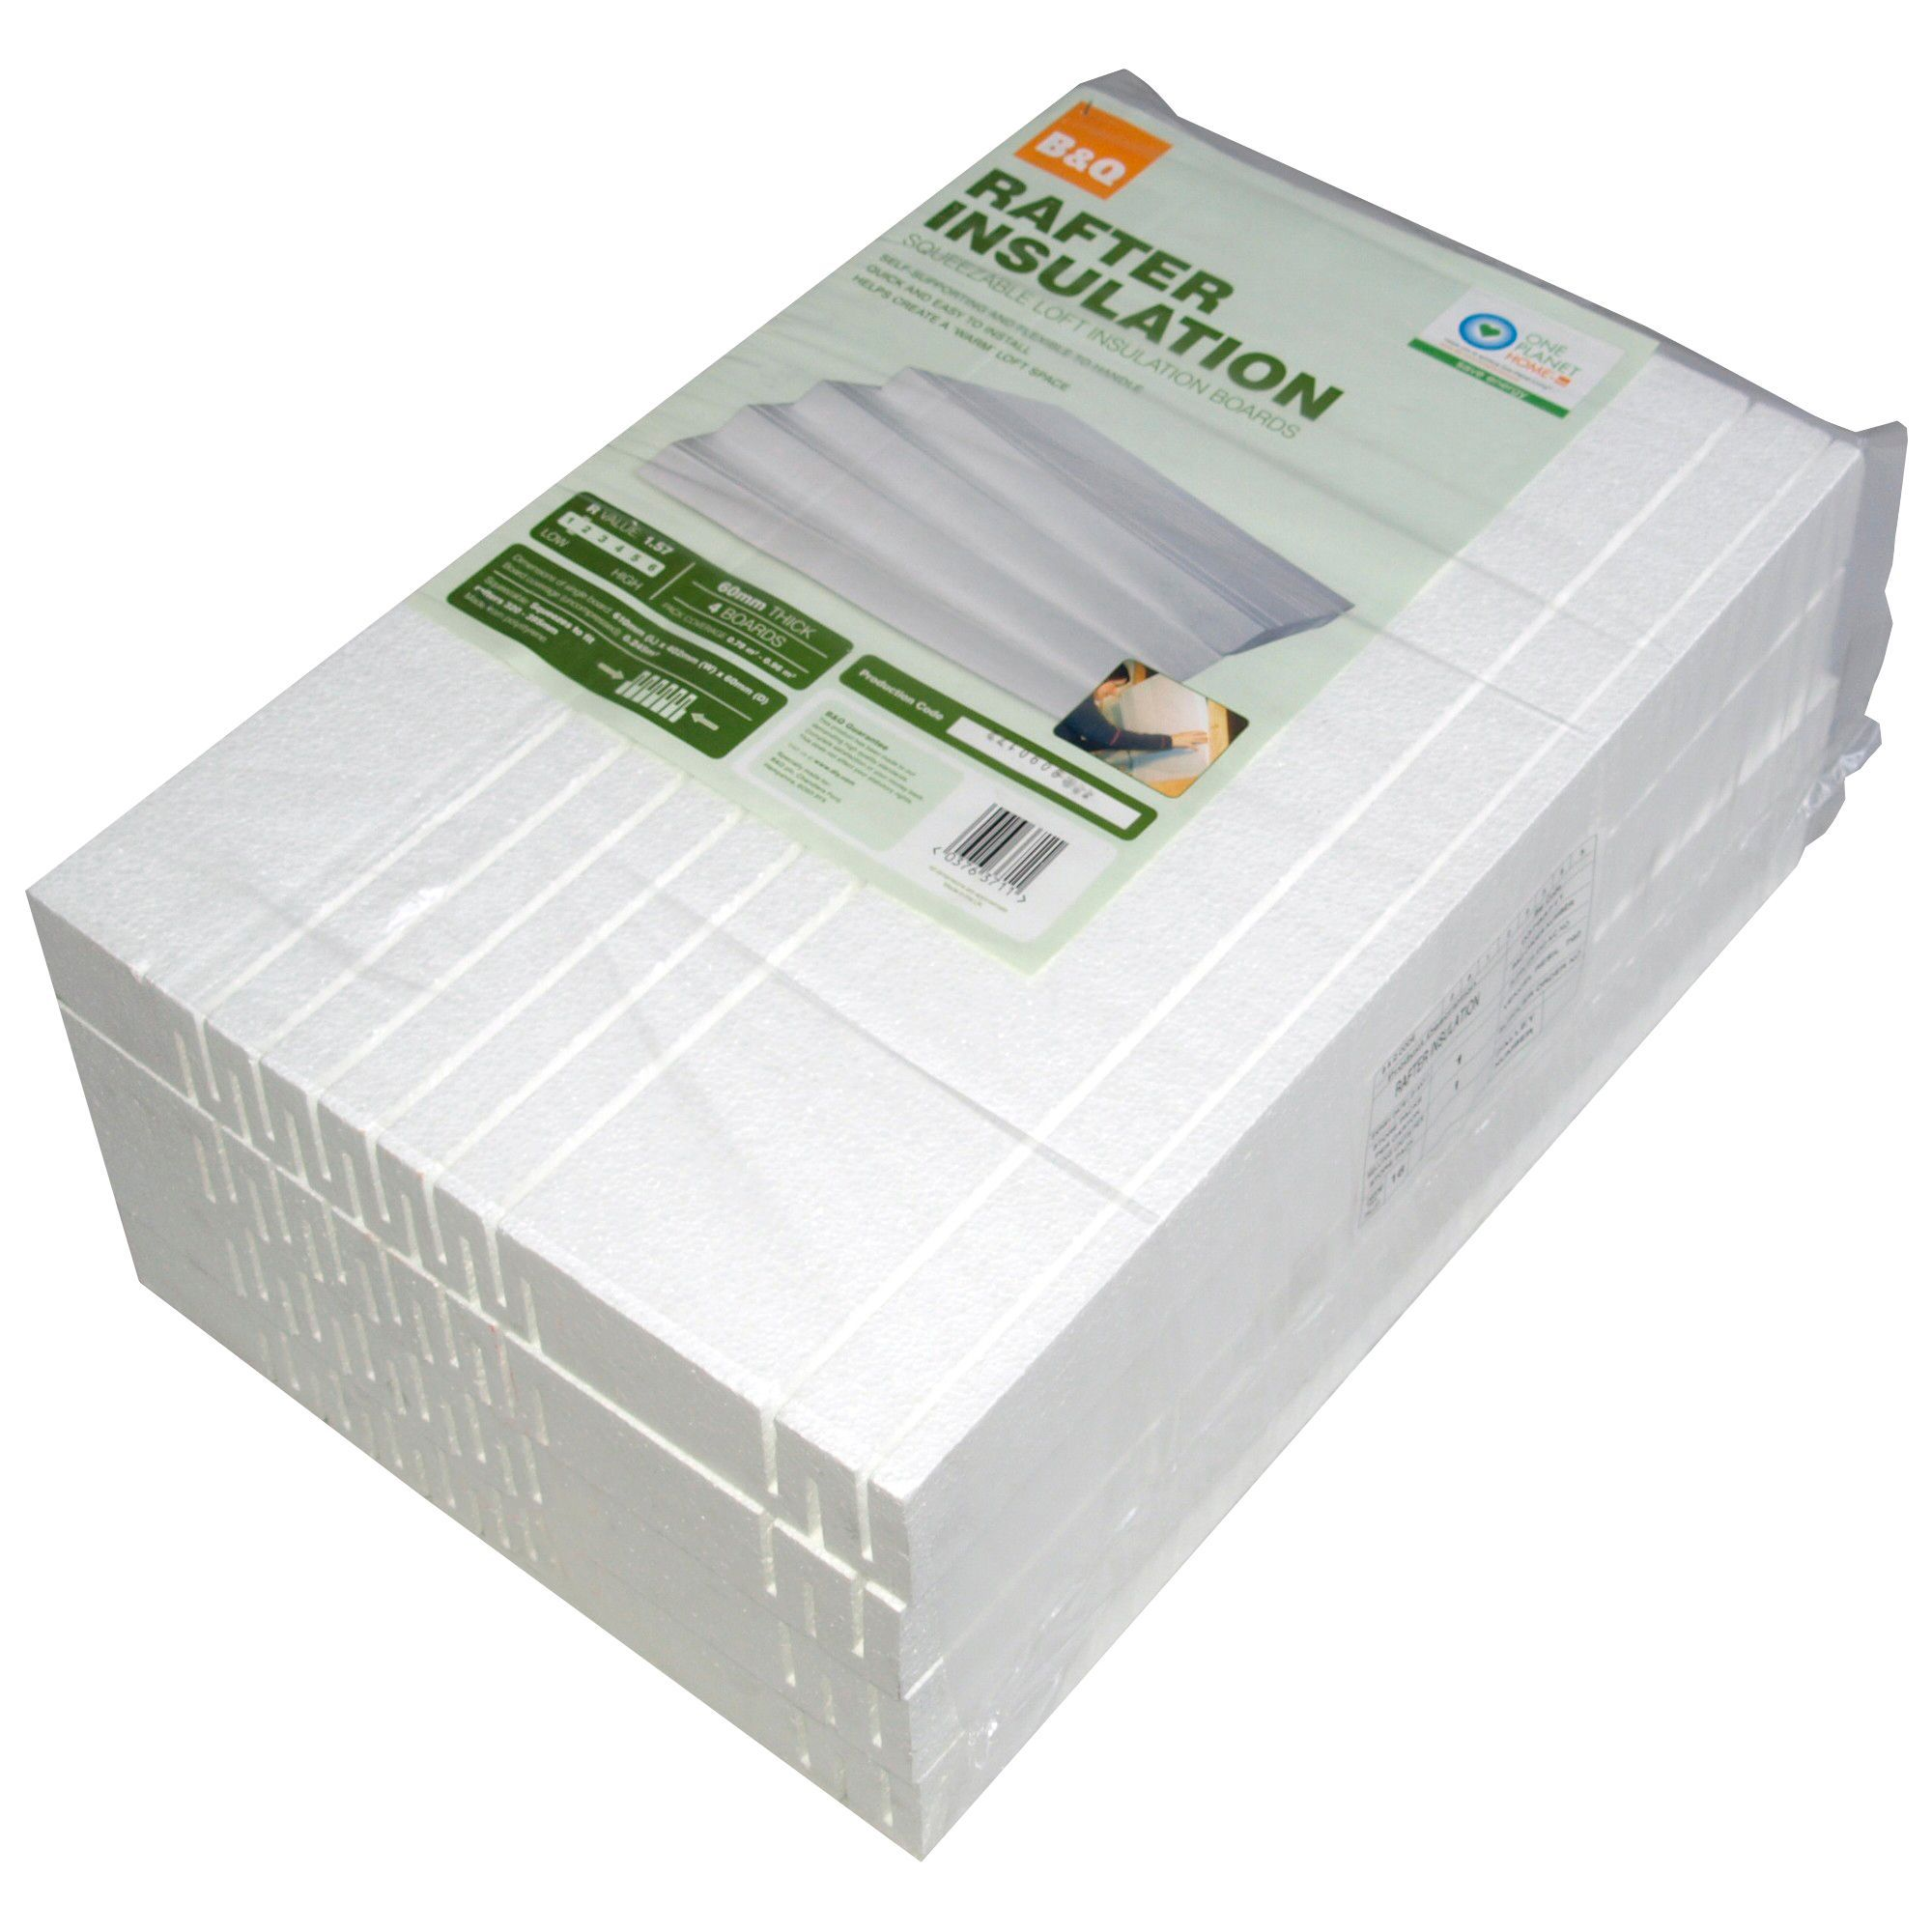 Diy At B Q: B&Q Insulation Board 610mm 402mm 60mm